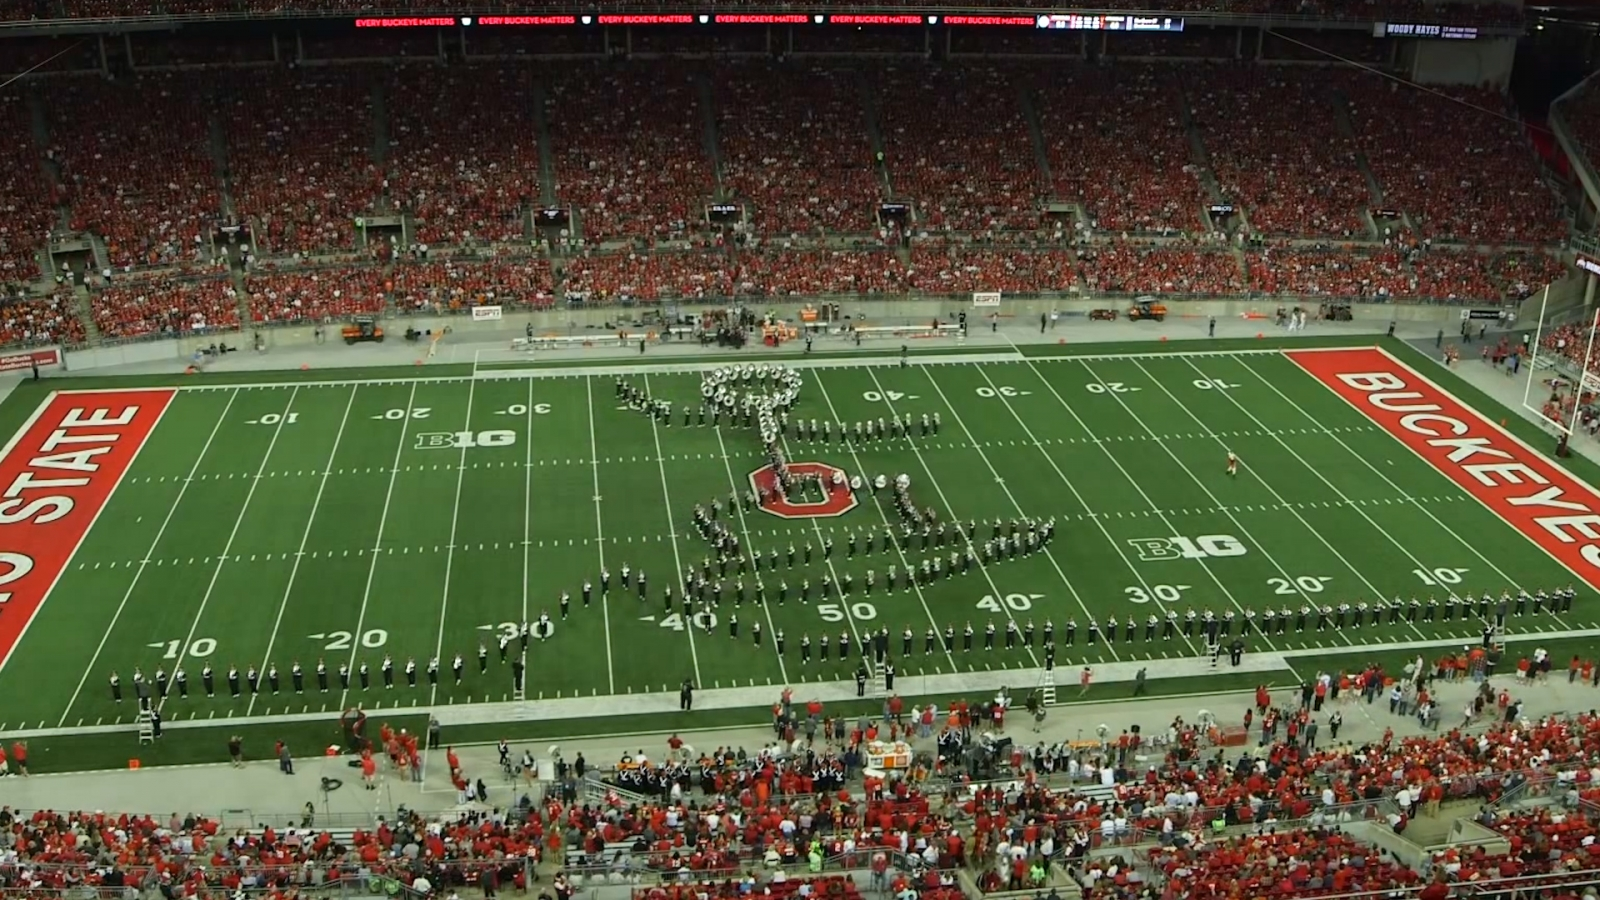 Ohio State University Marching Band: Highlights of Their Amazing Half-Time Shows